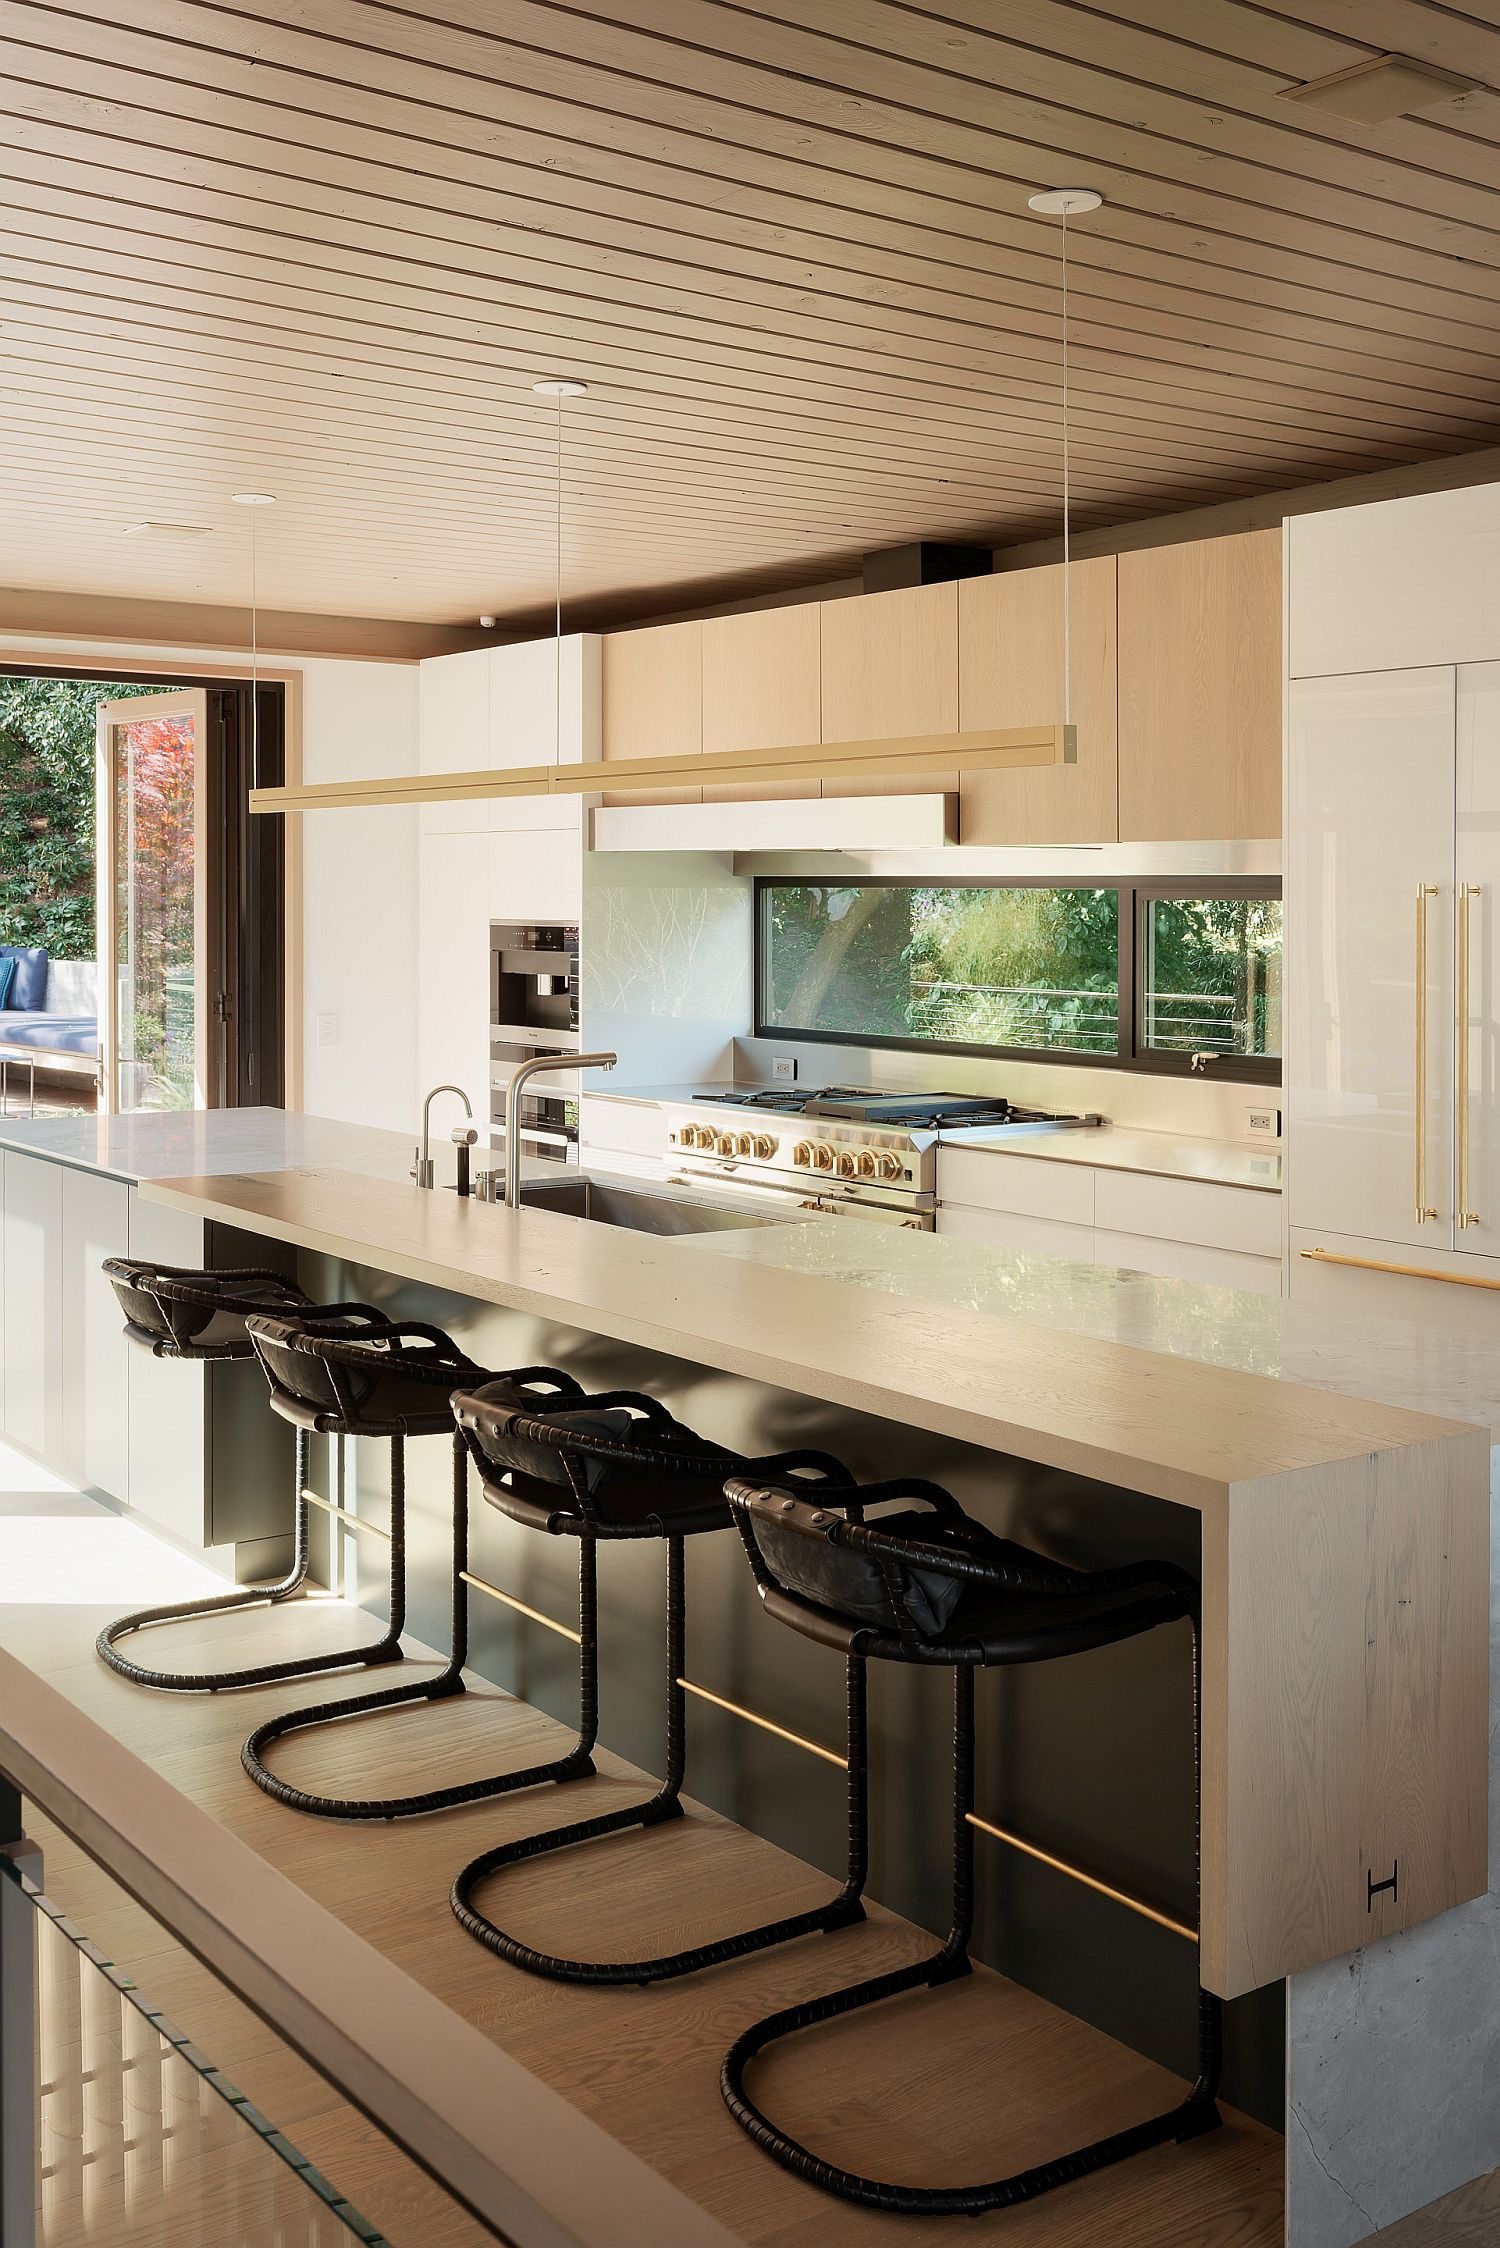 Kitchen of the Twin Peaks Residence with wood and white palette